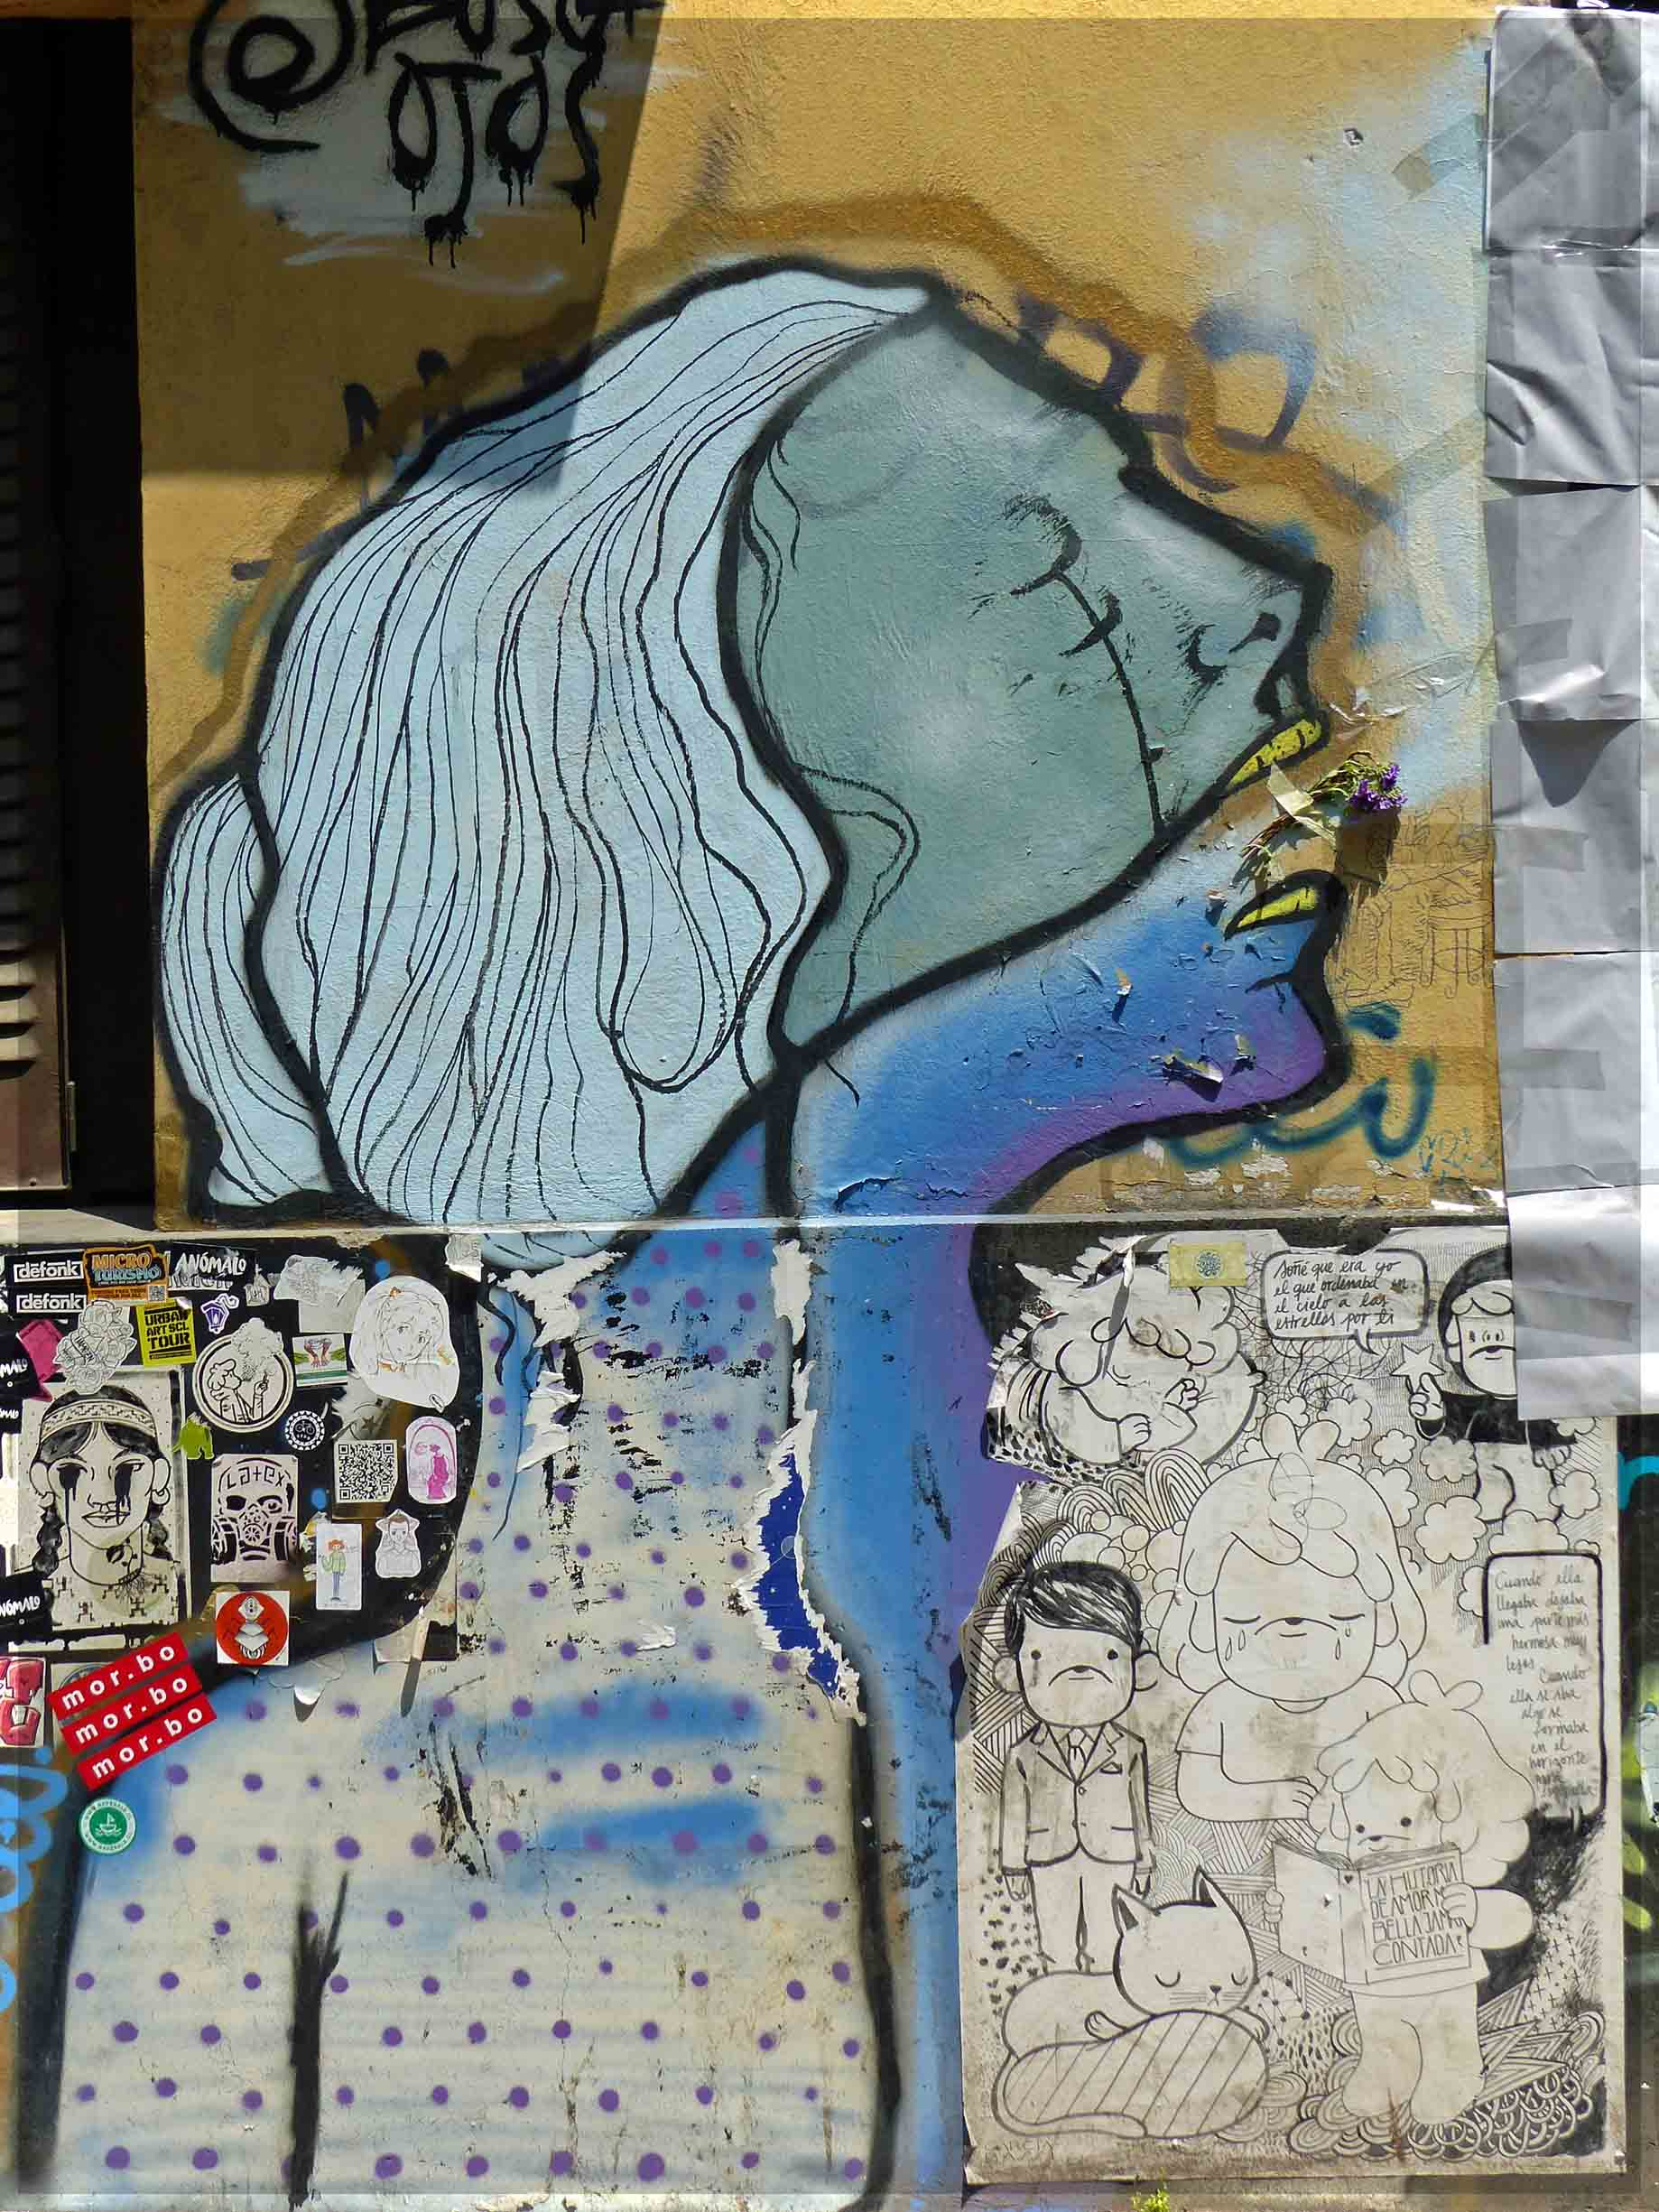 Wall painting of a woman in profile